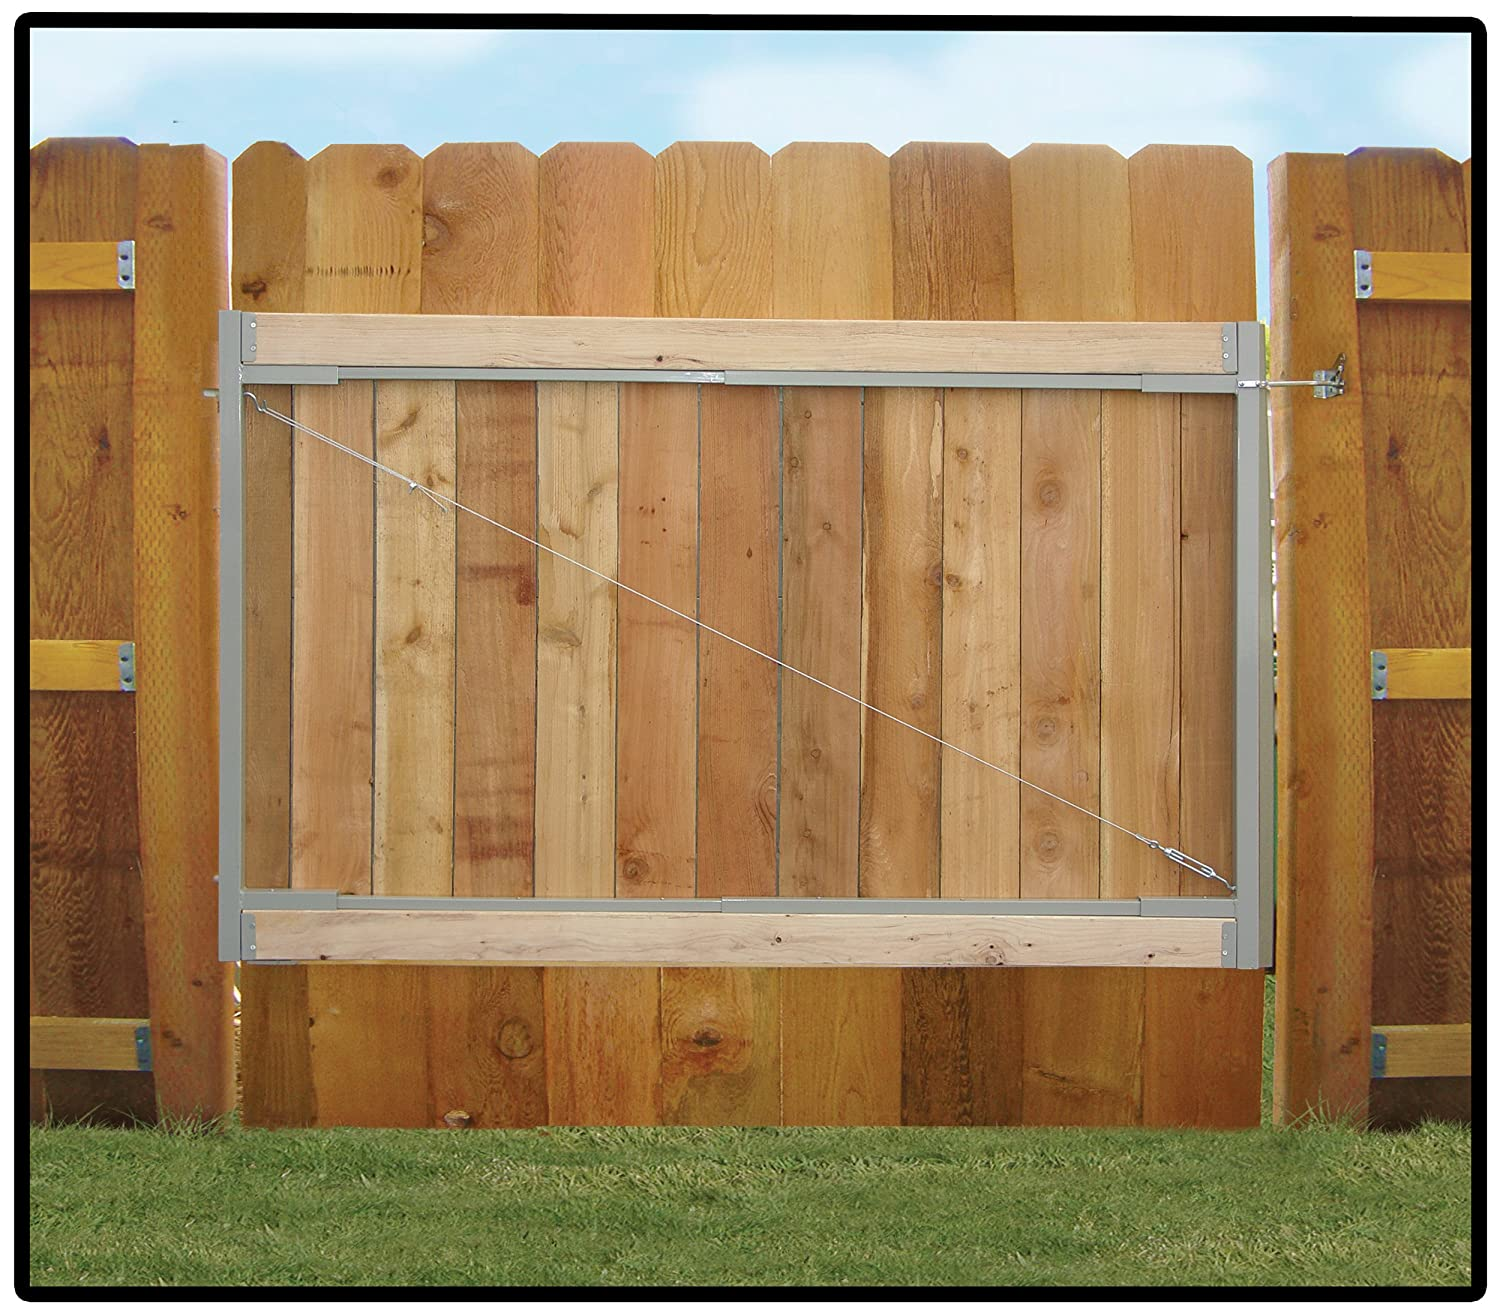 Wooden Childrens Fence Gorgeous Home Design